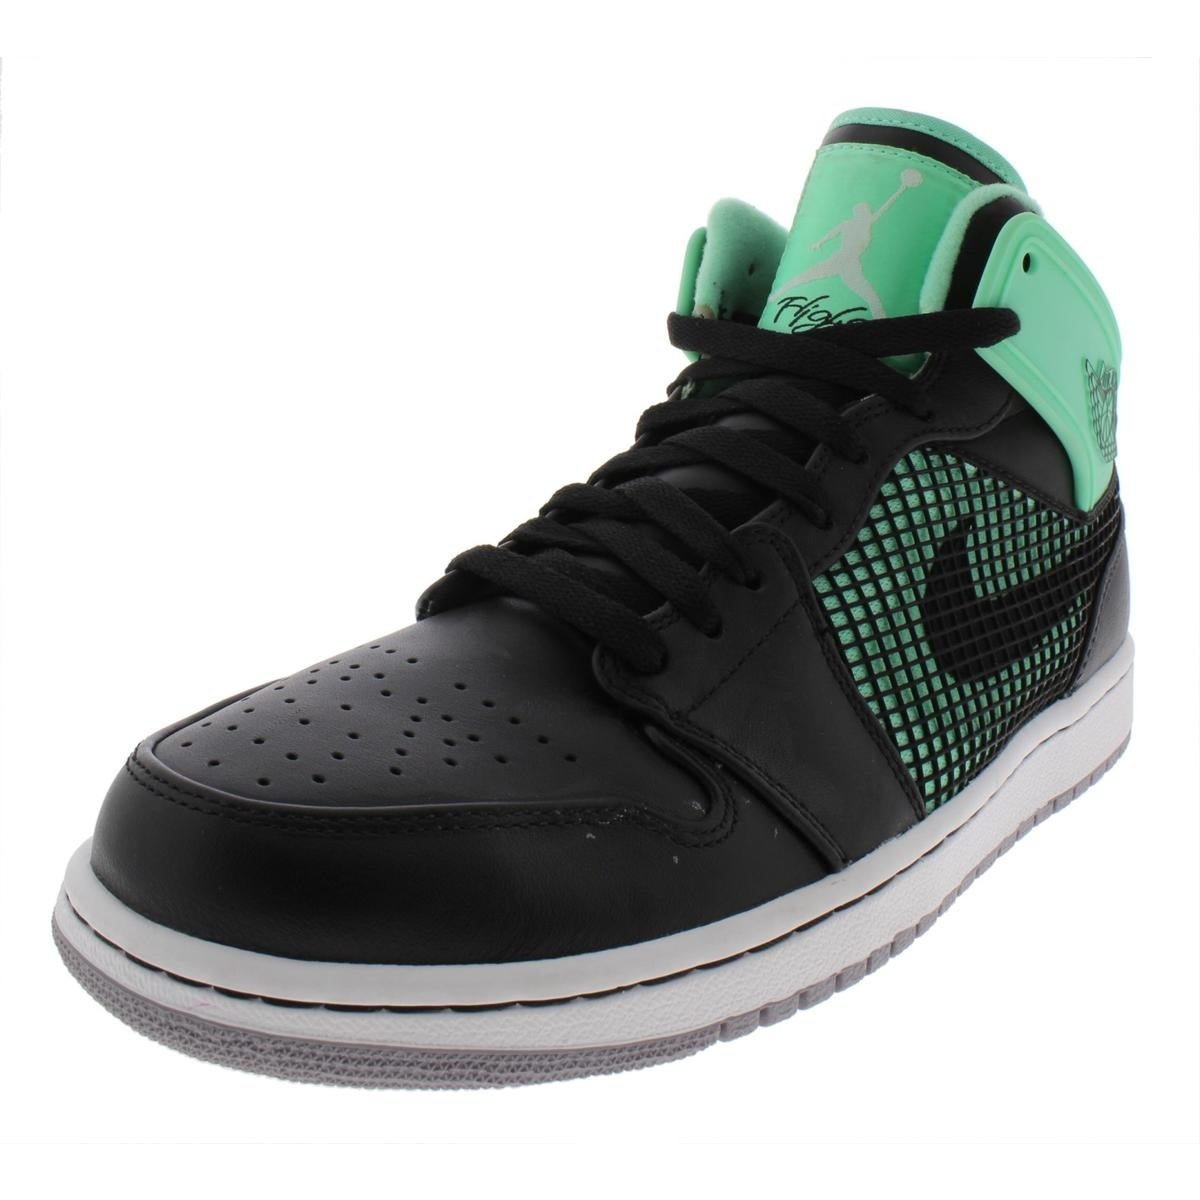 half off 648a3 23304 Nike Mens Air Jordan 1 Retro  89 Basketball Shoes Leather Hightop